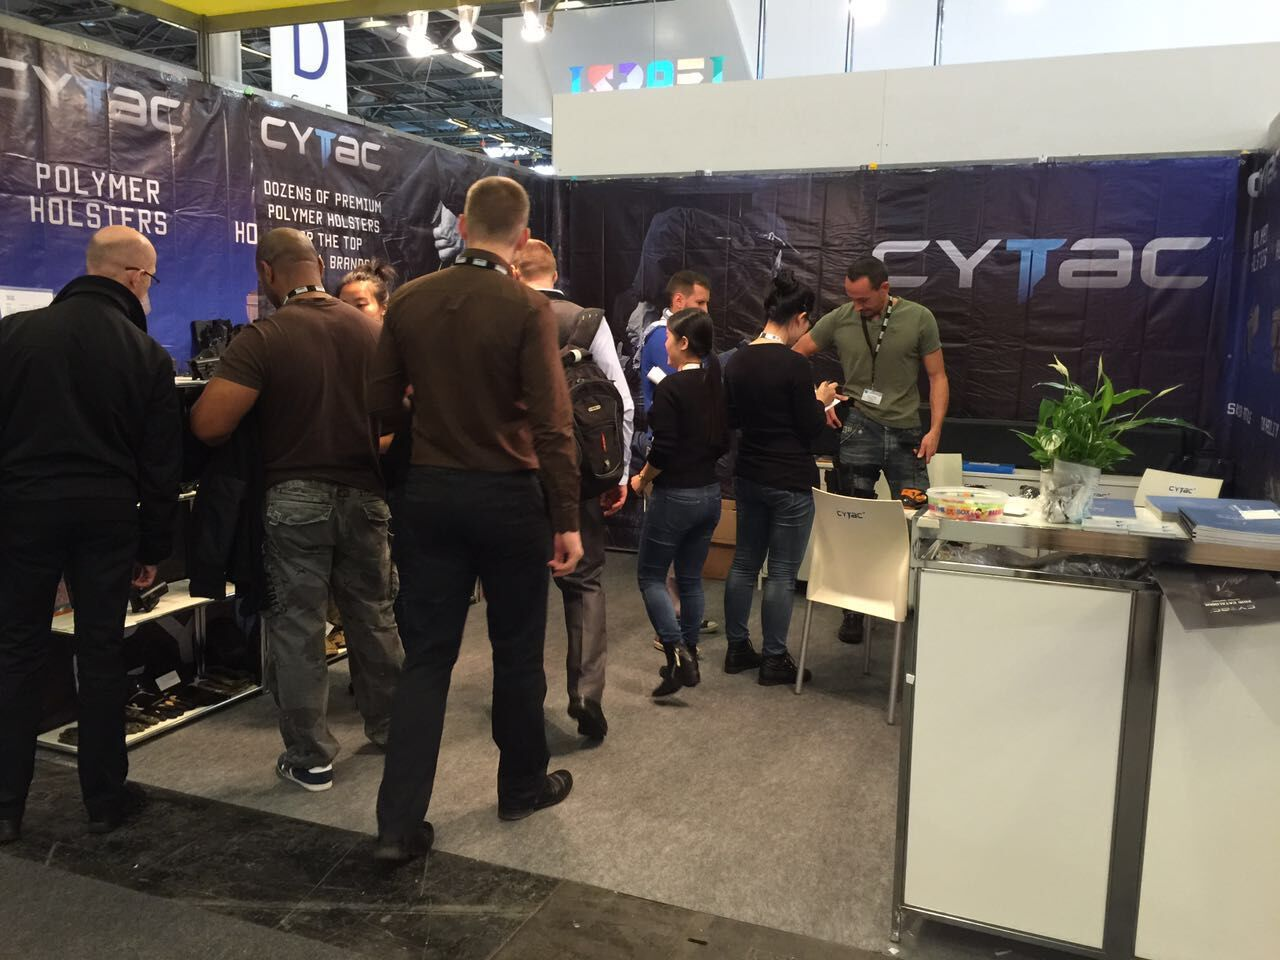 Cytac in Milipol Paris 2015